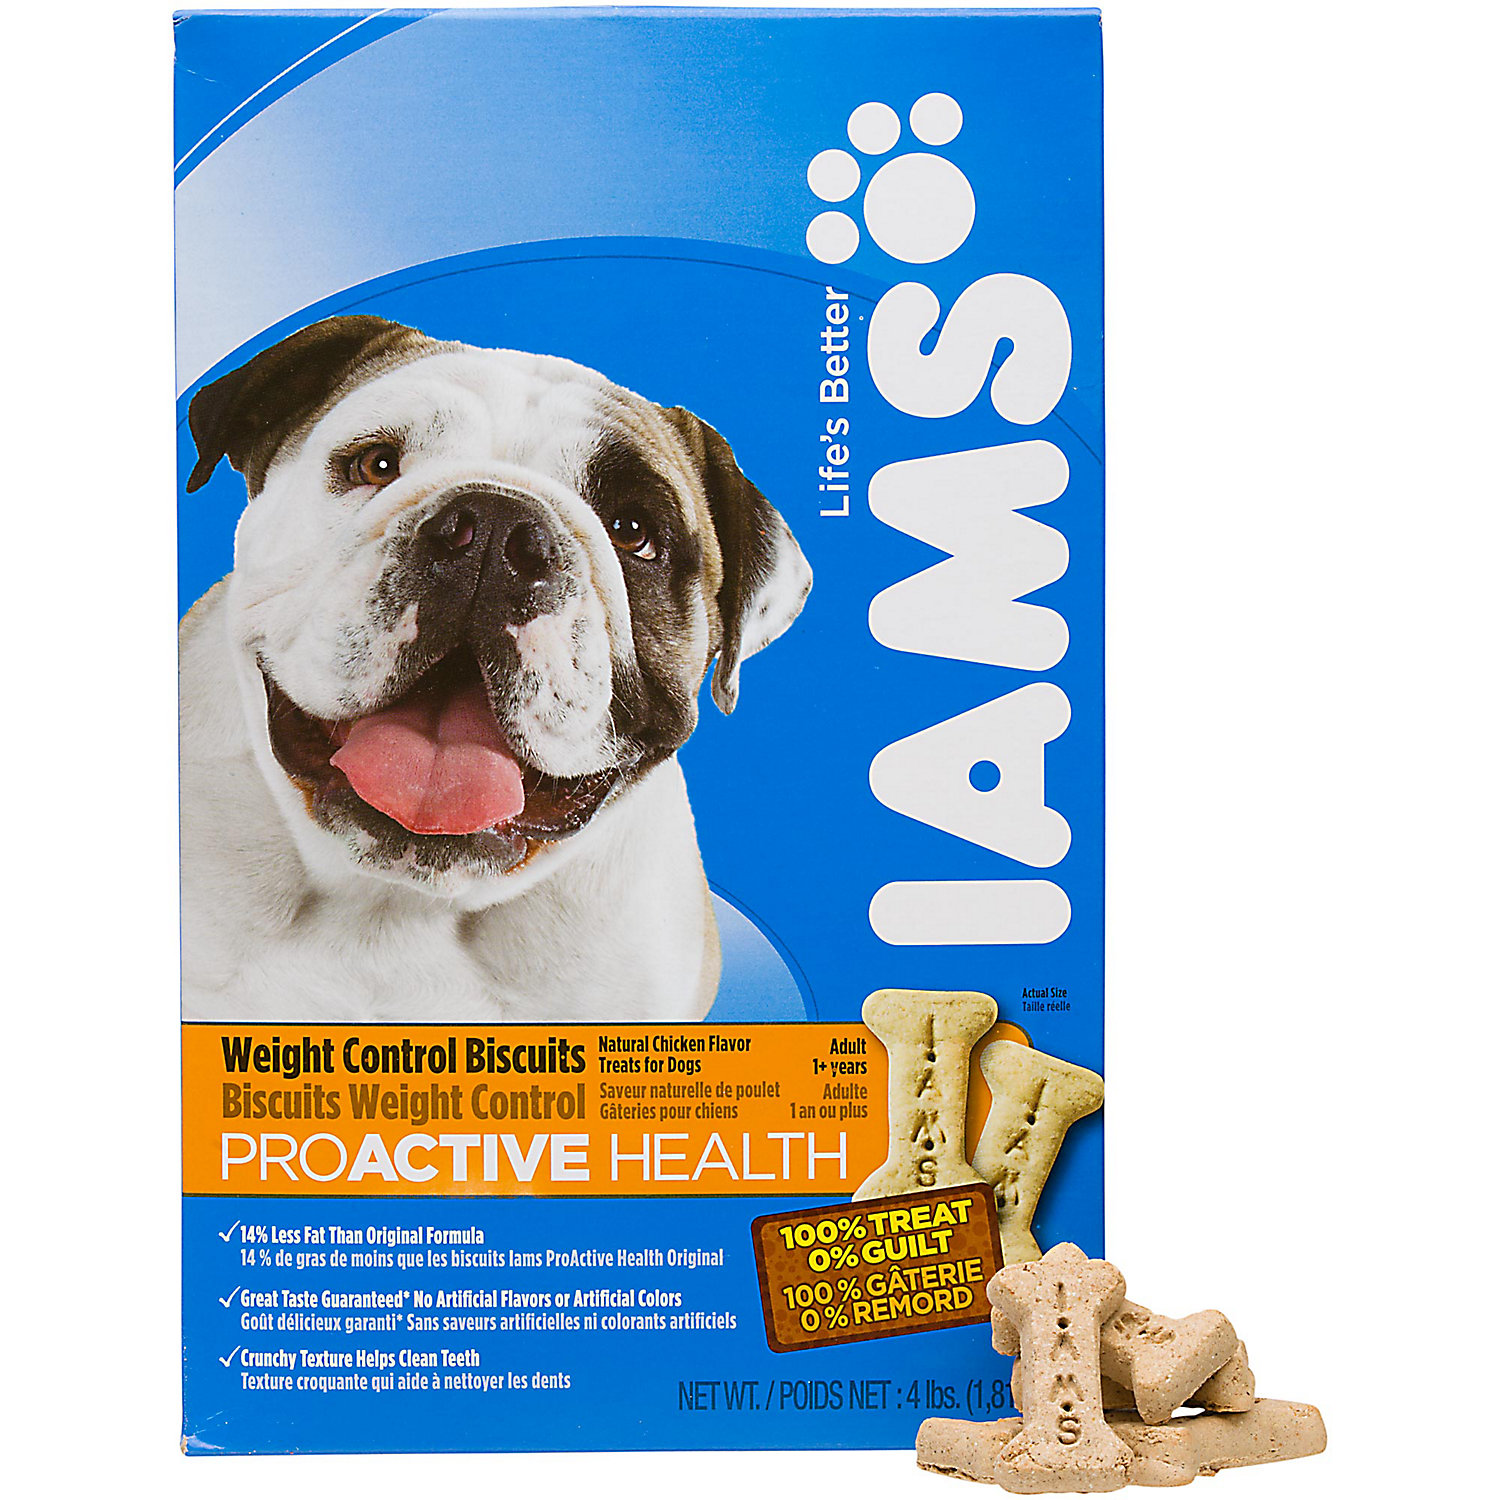 Iams Proactive Health Puppy Biscuits Dog Treats